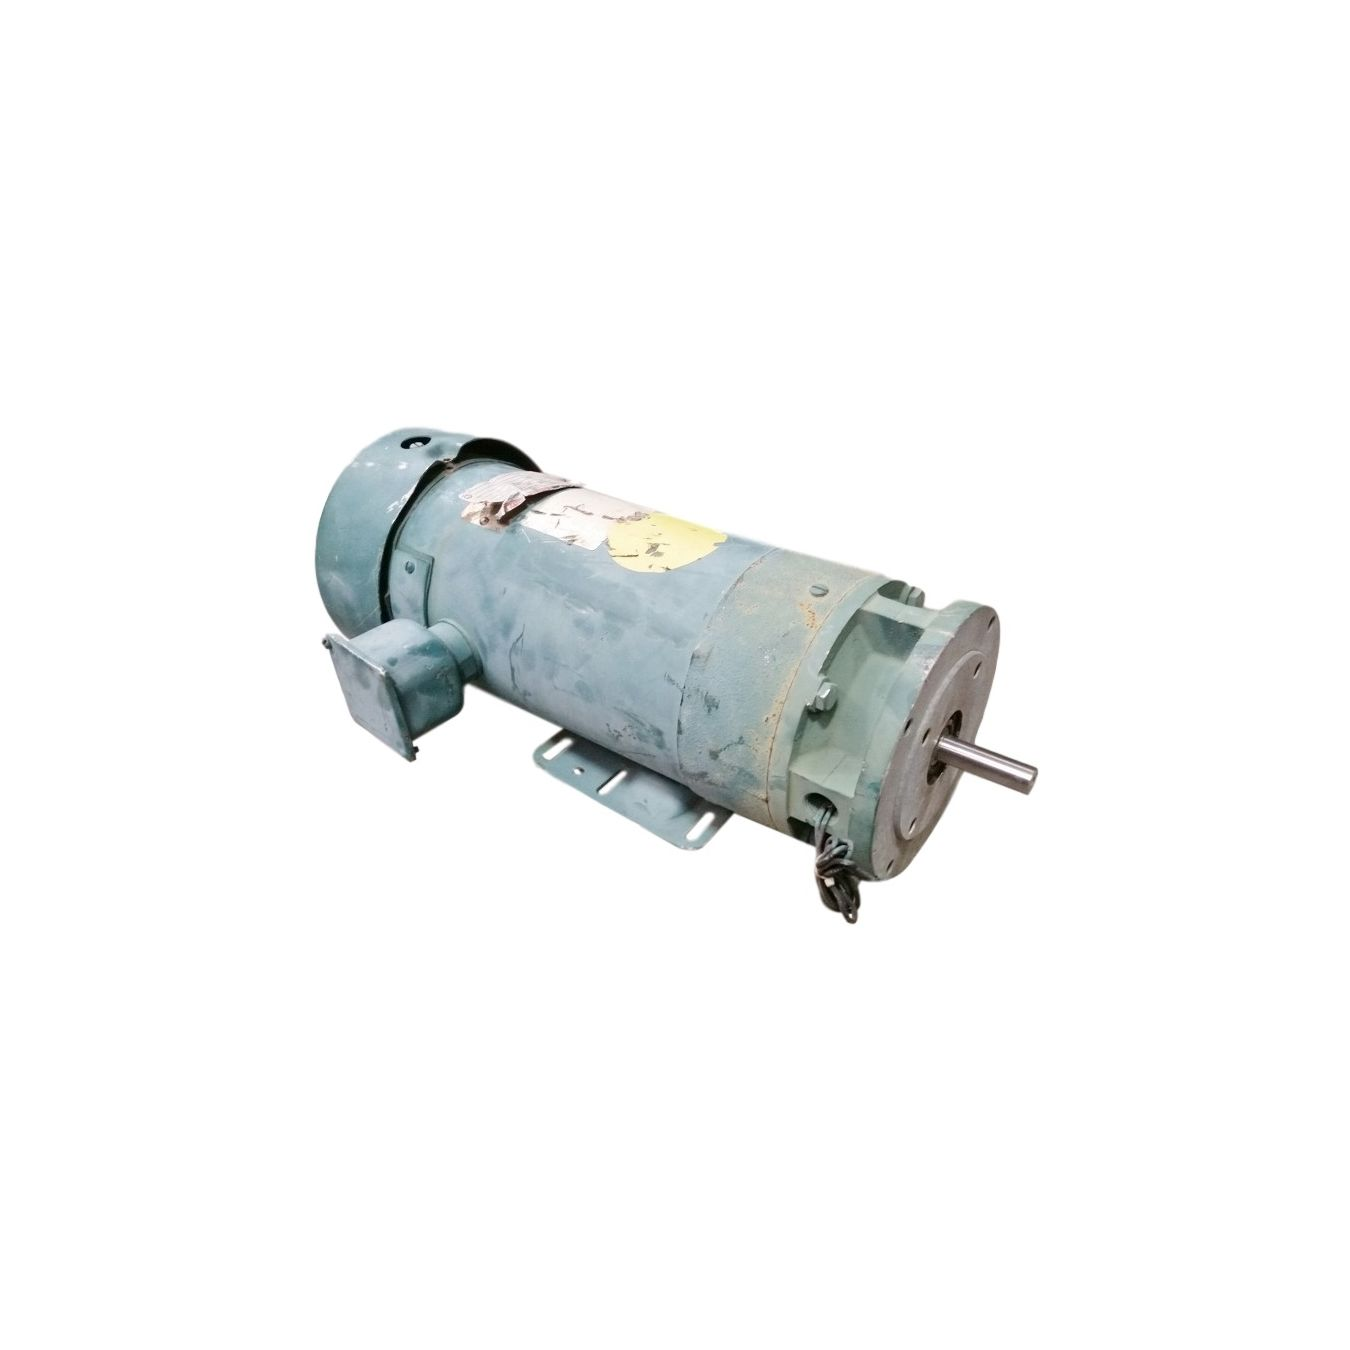 3 4 Hp Reliance Dc Electric Motor 1725 Rpm Motors Drives